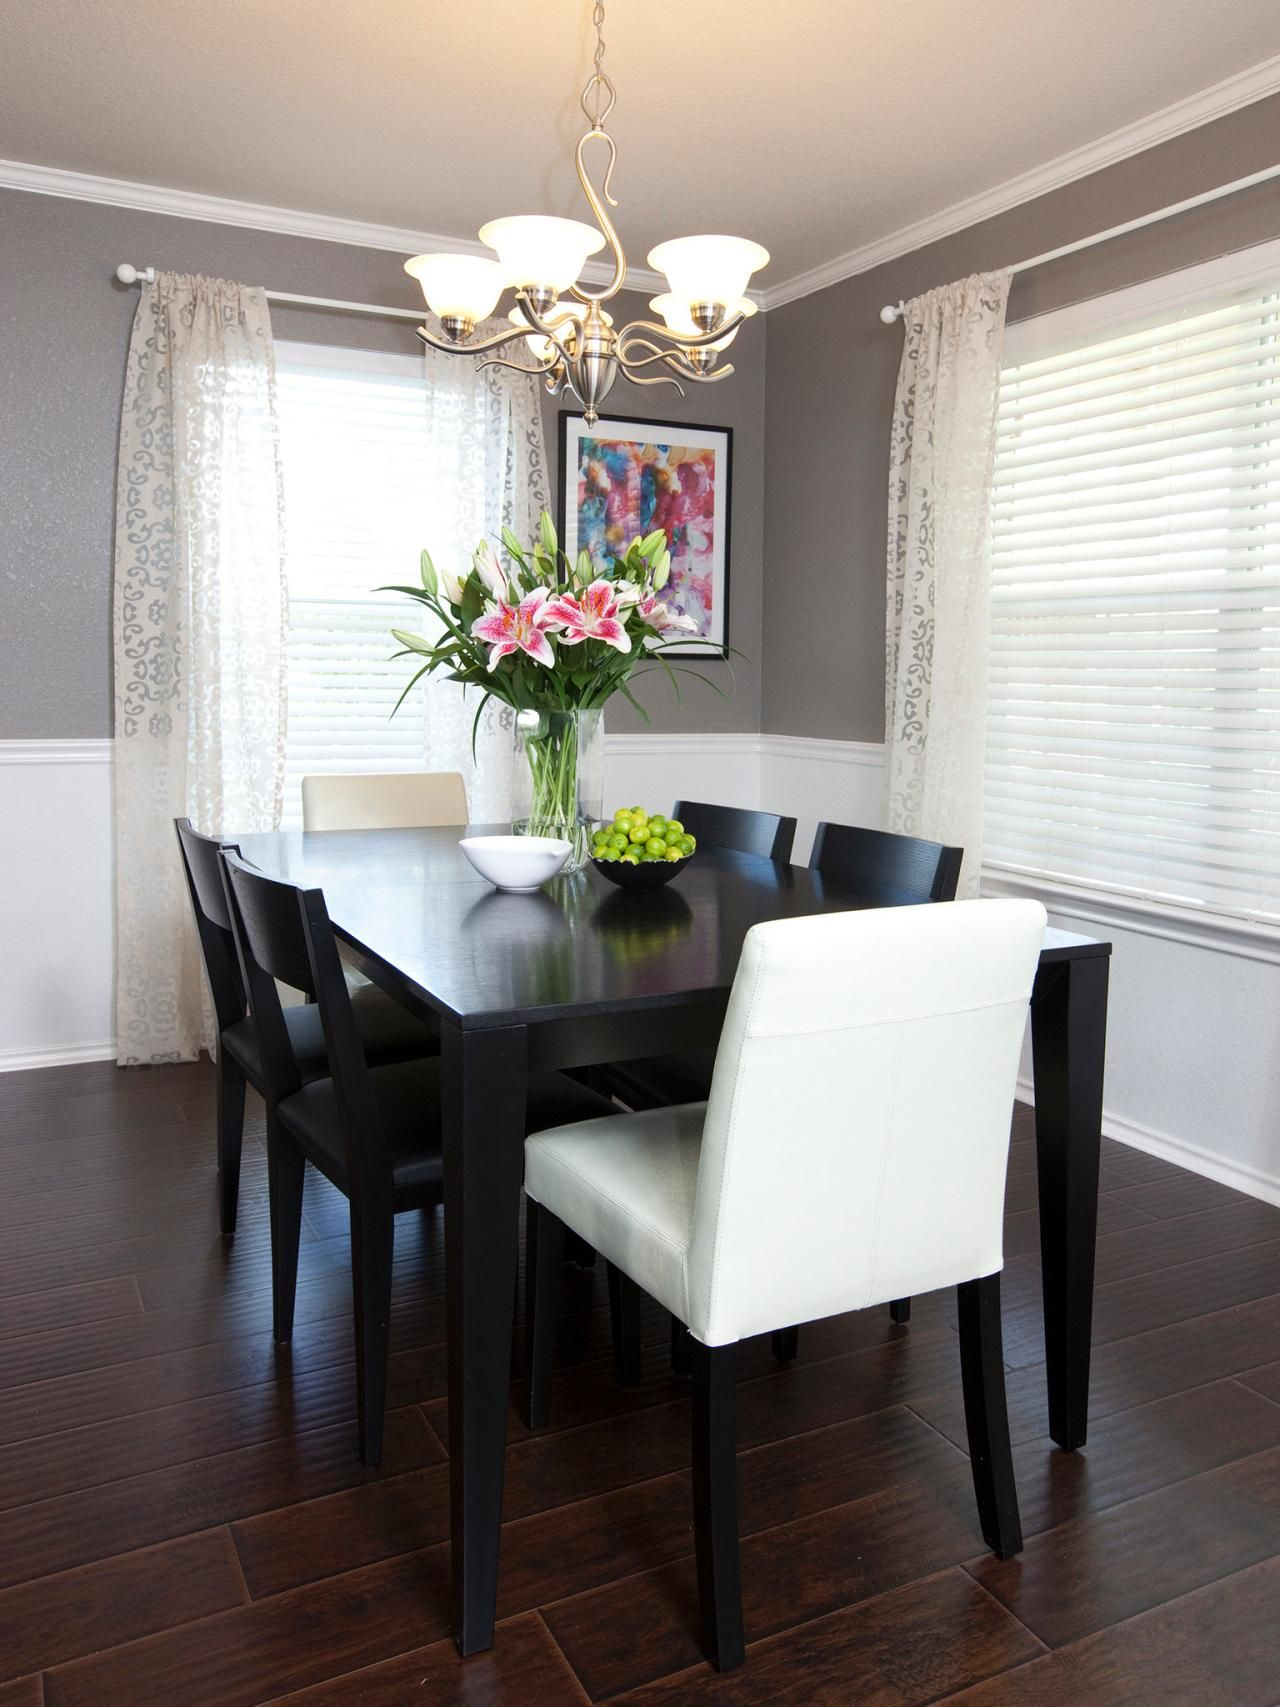 Chair Rail Molding Divides Two Toned Walls In This Neutral Dining Room Sheer Curtains Gray RoomsTransitional RoomsBlack